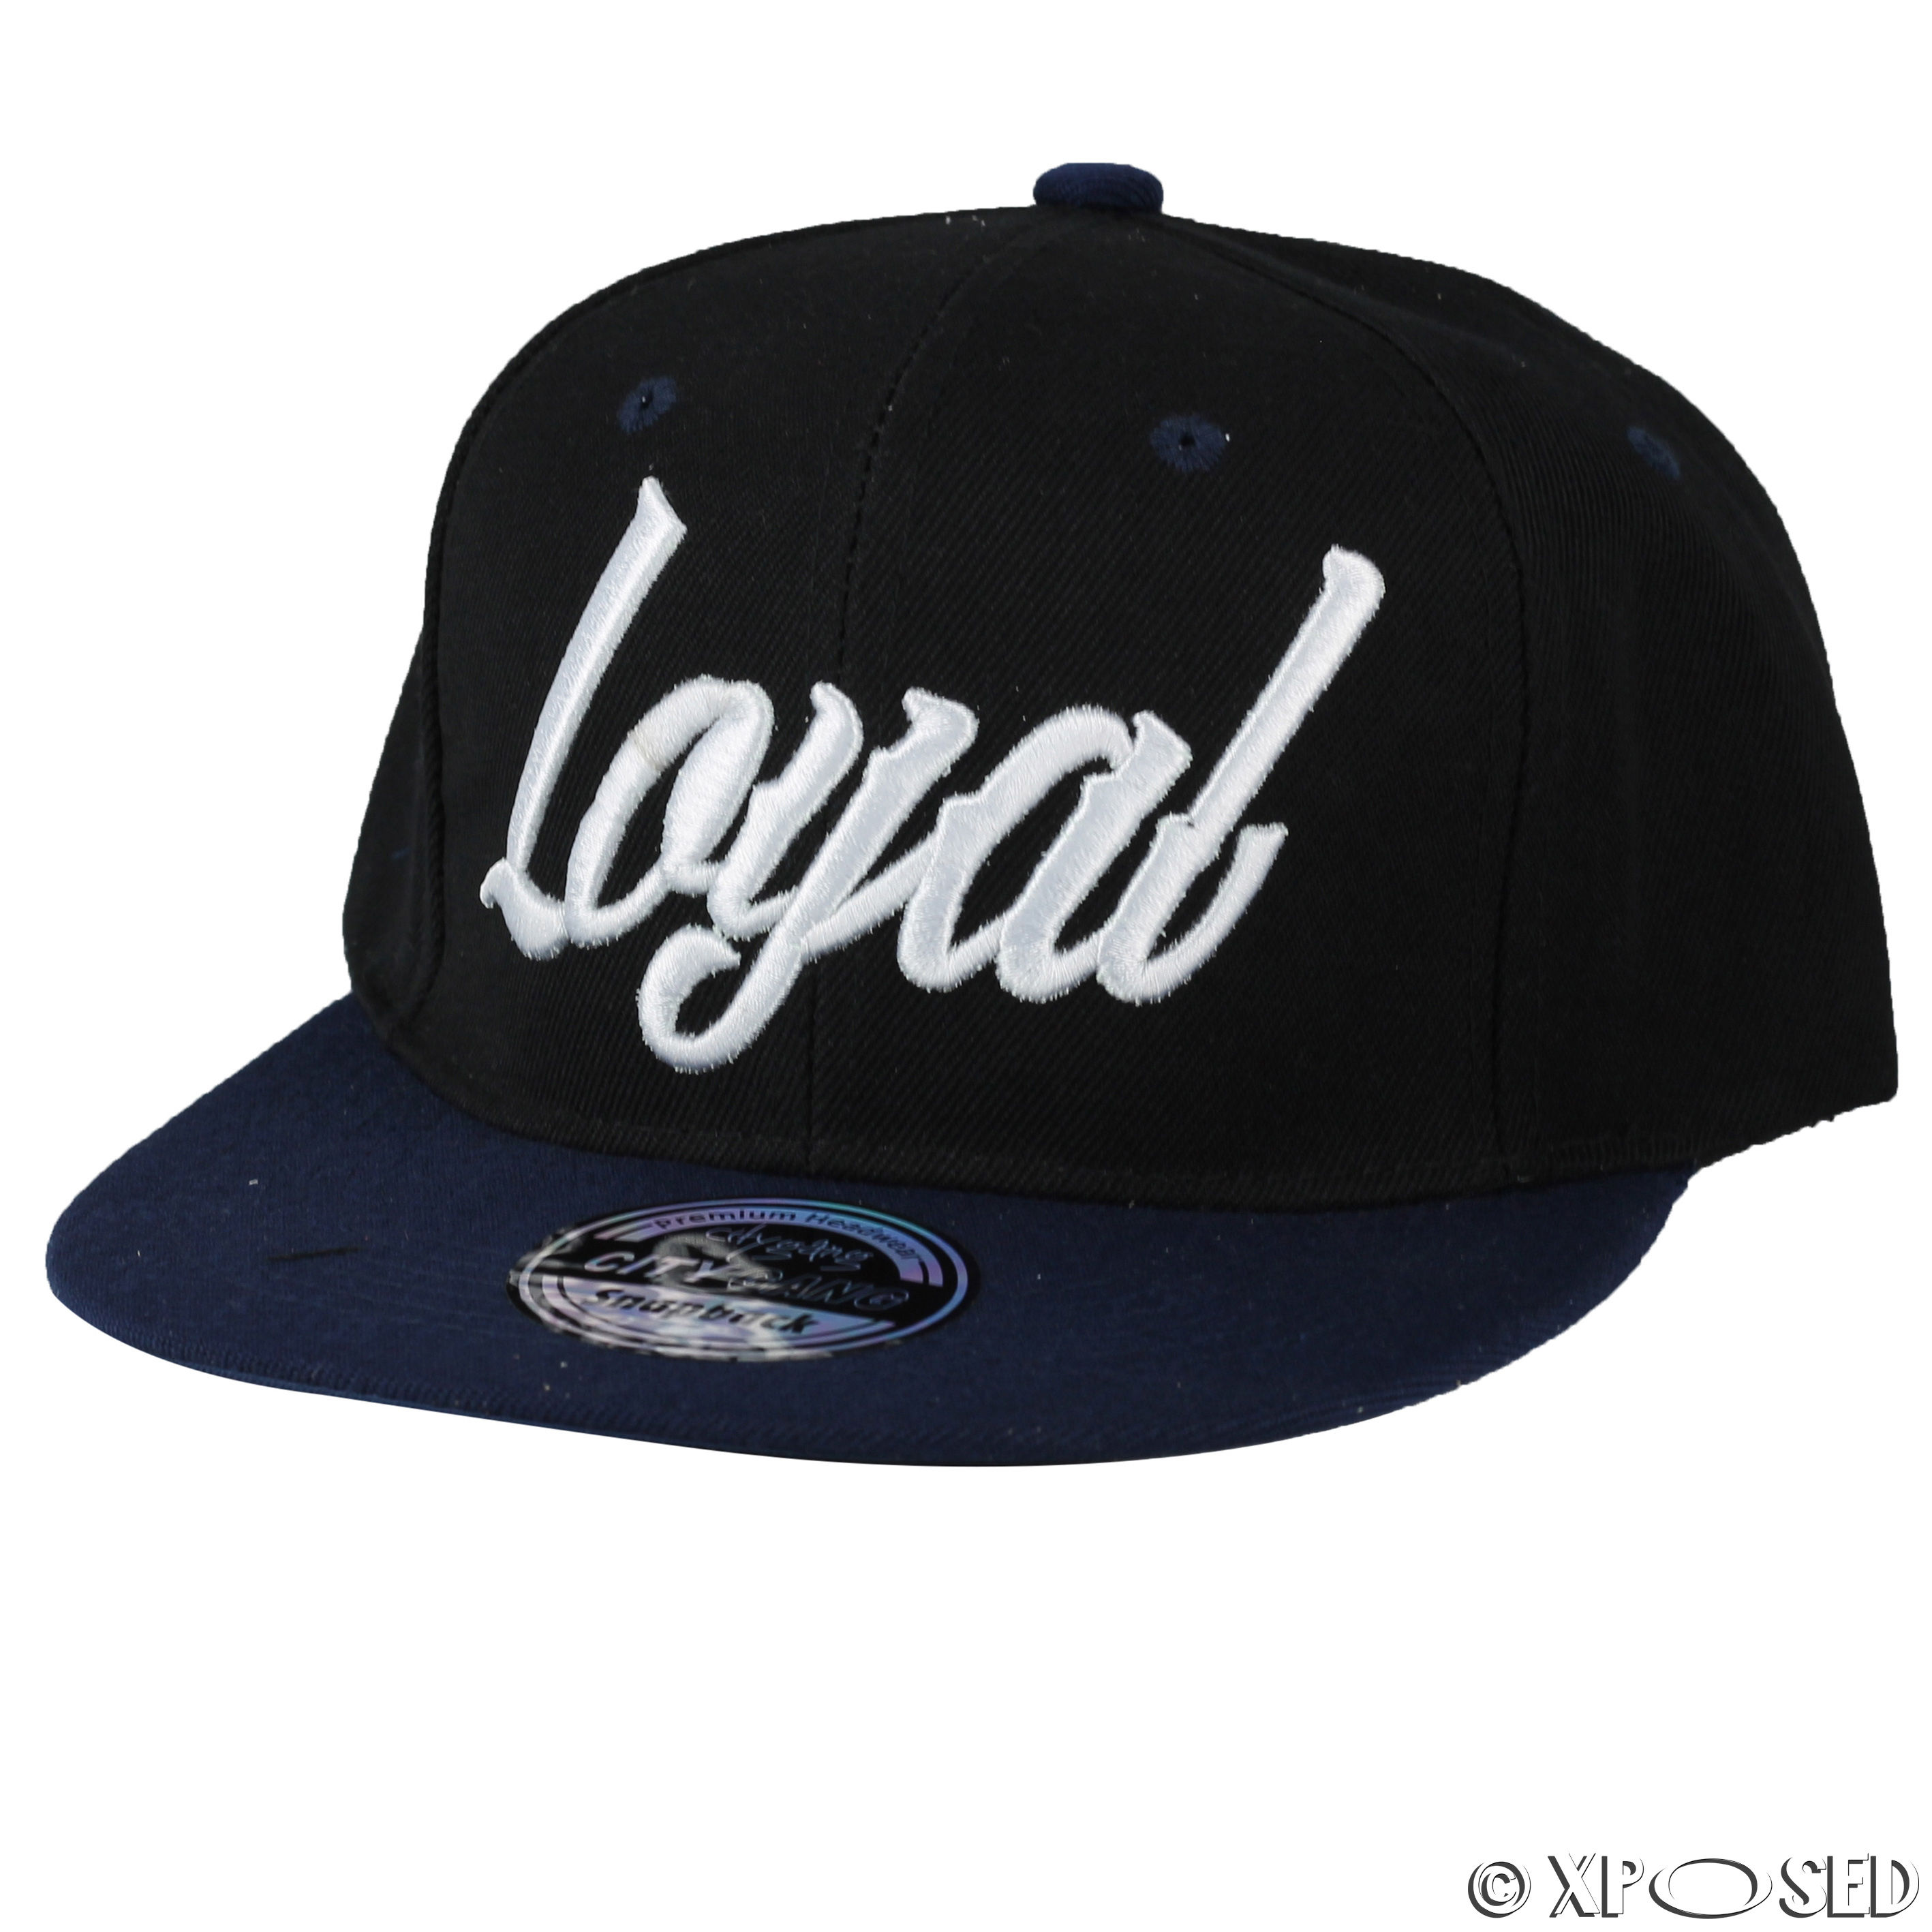 Find snapback caps online at lemkecollier.ga We have a large selection of snapback caps from the world's leading brands. Fast delivery from our warehouse.